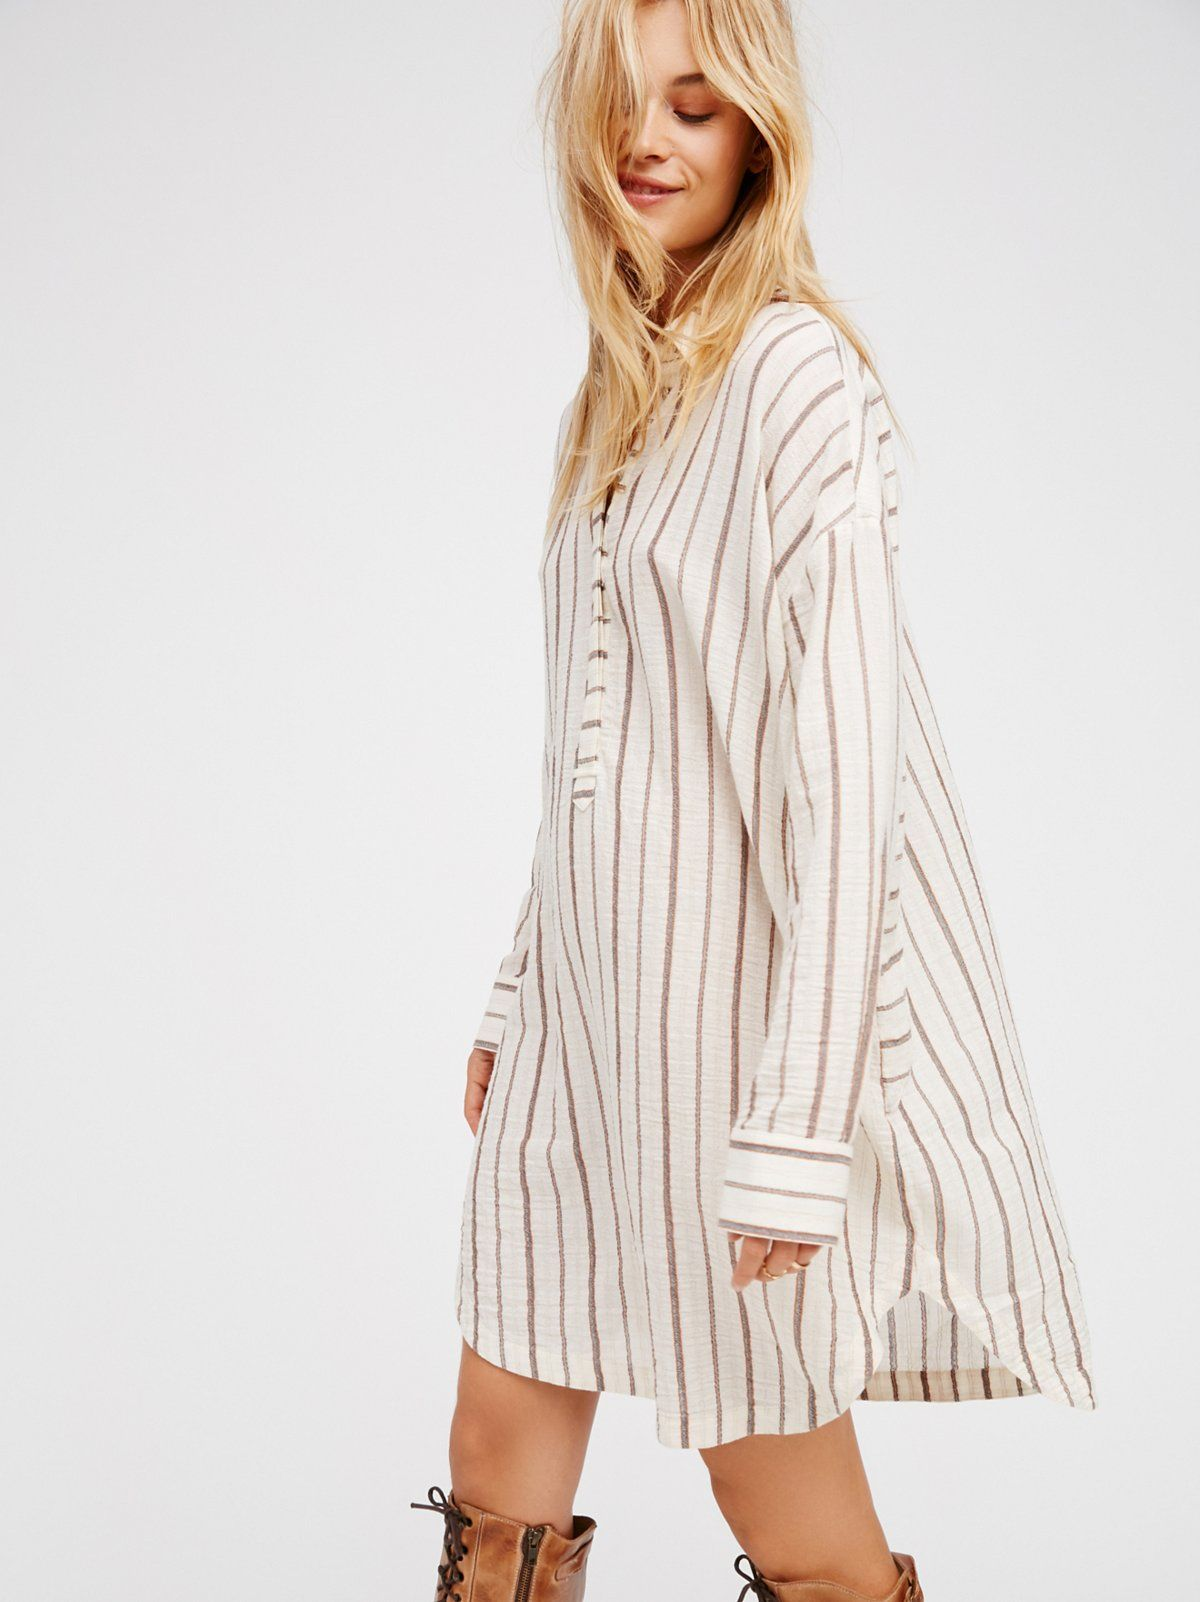 All this beauty long sleeve at free people clothing boutique to